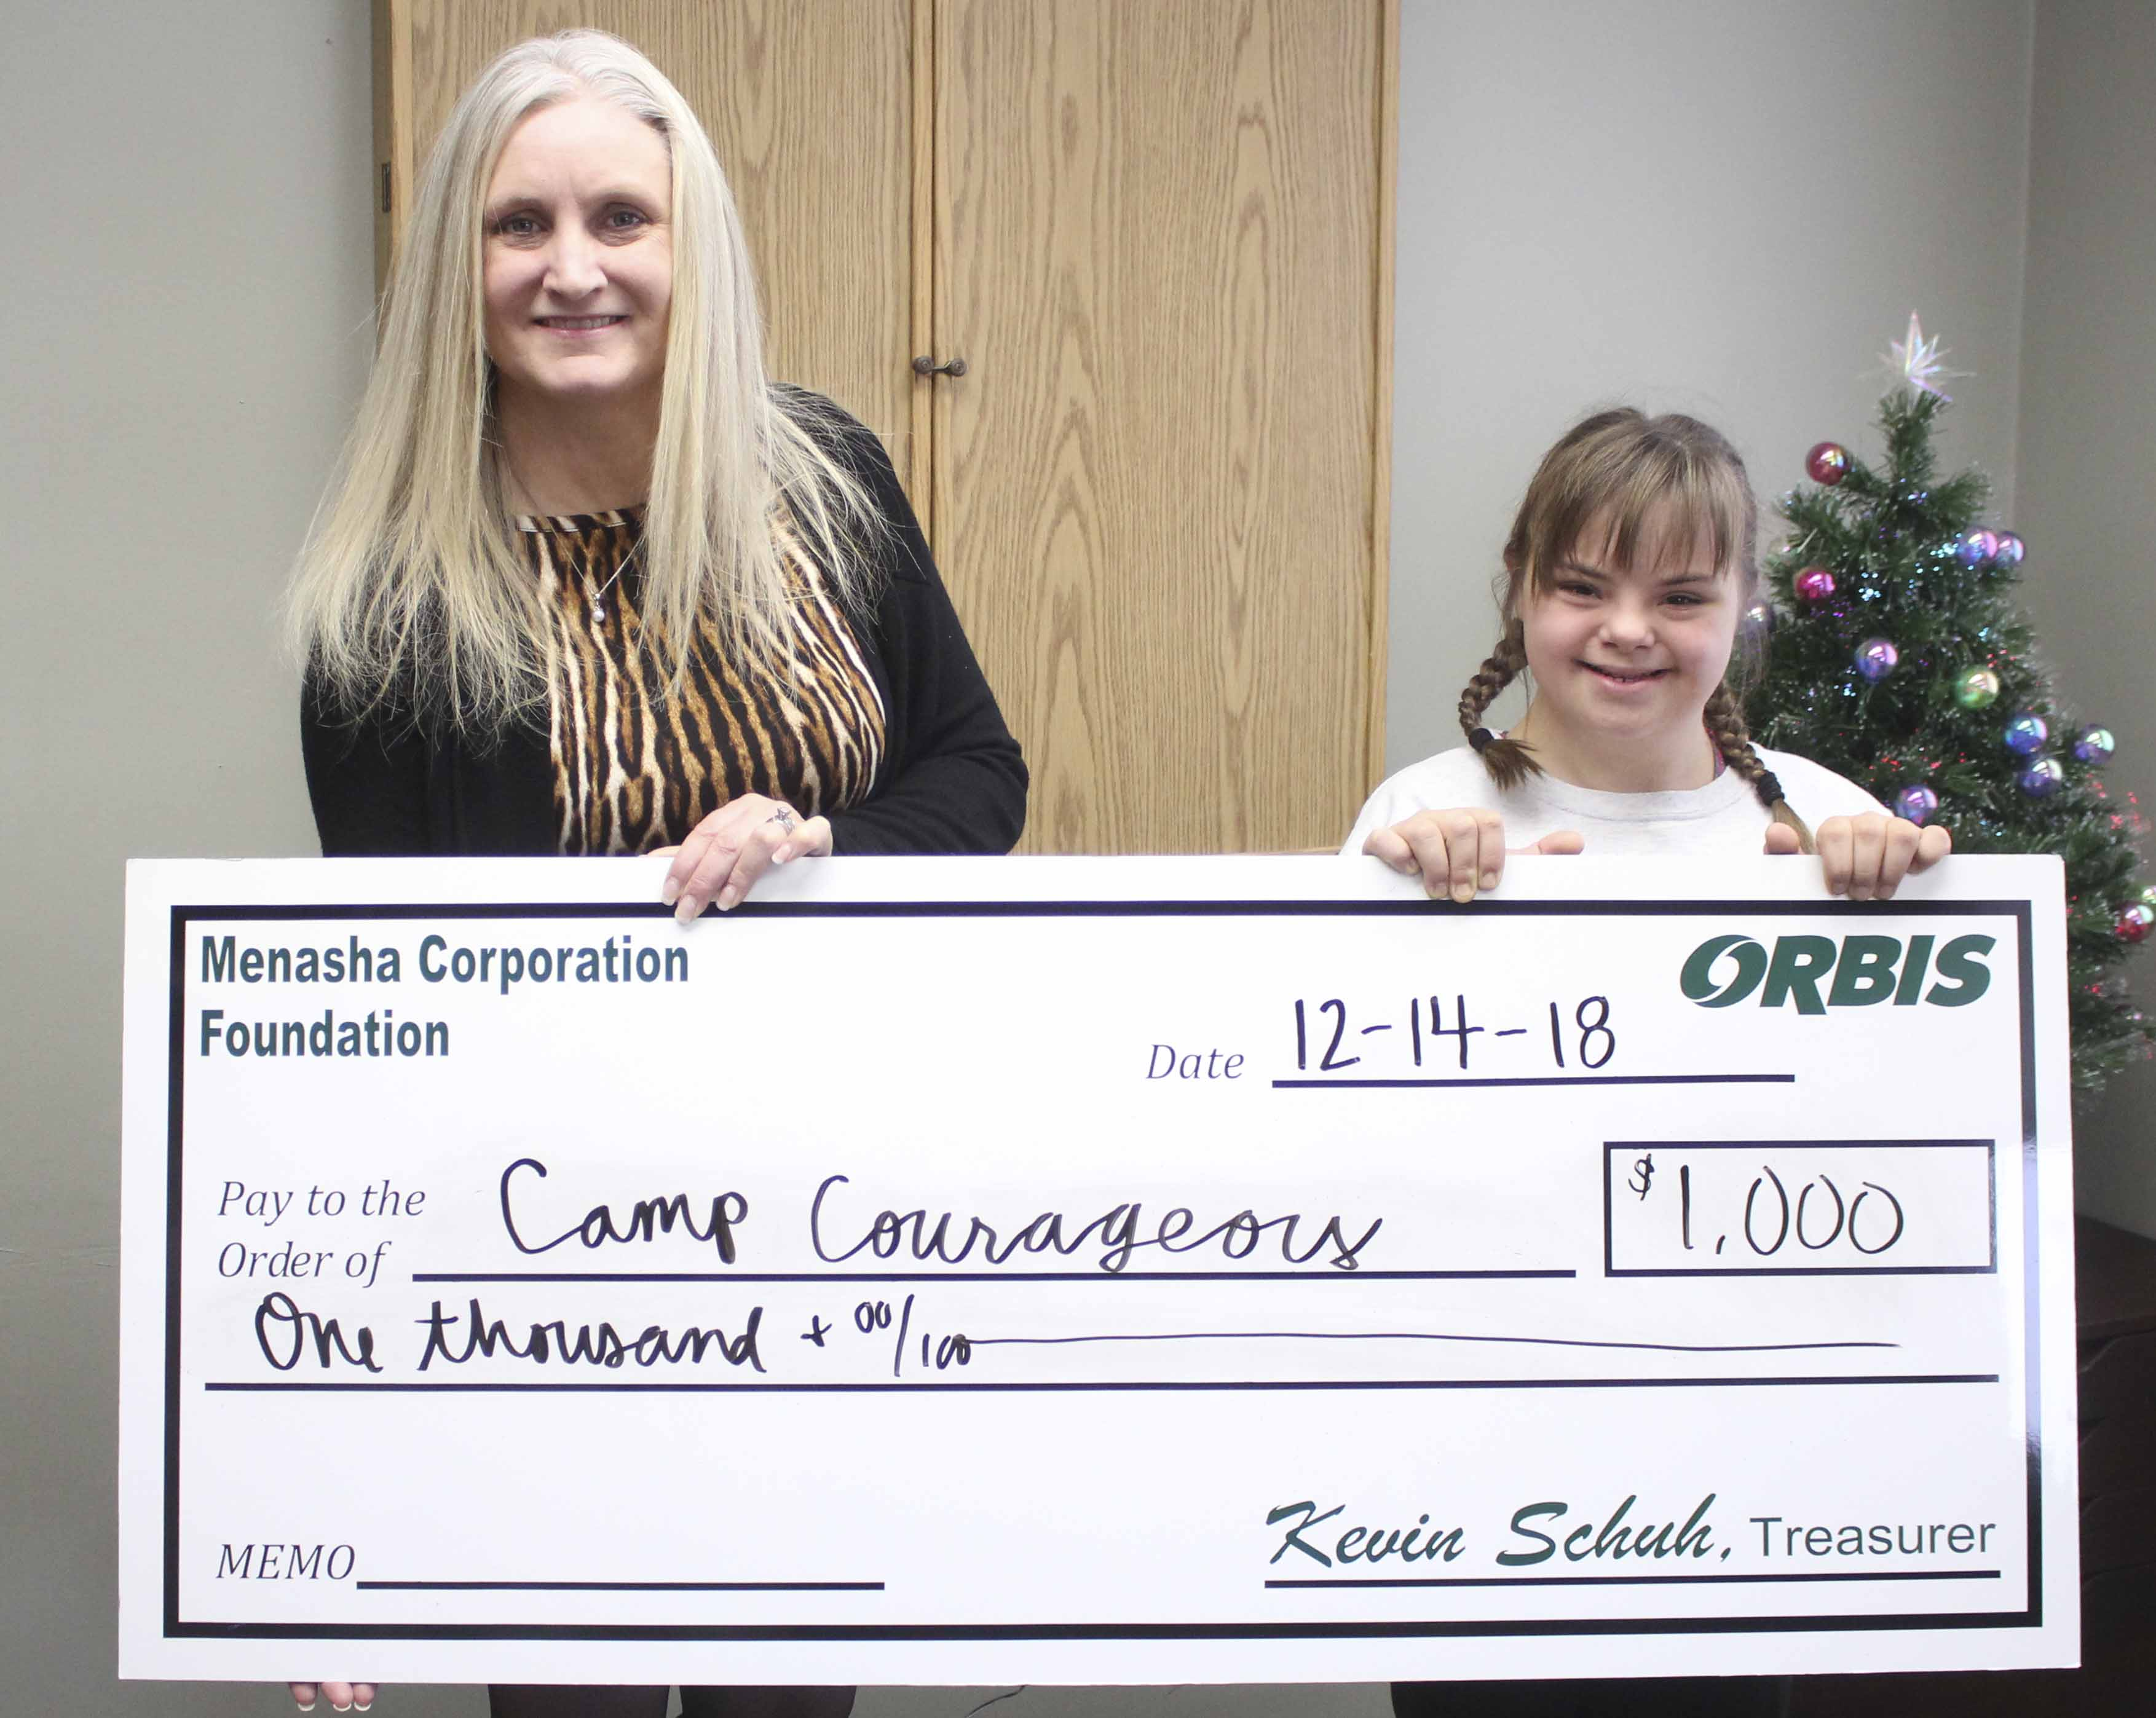 Orbis Corporation of Monticello has made its annual donation to area organizations, including this one to Camp Courageous. Annie Schlarmann (right), representing Camp Courageous, accepts the $1,000 donation from Lynnette Martineau of Orbis. (Photos by Pete Temple)